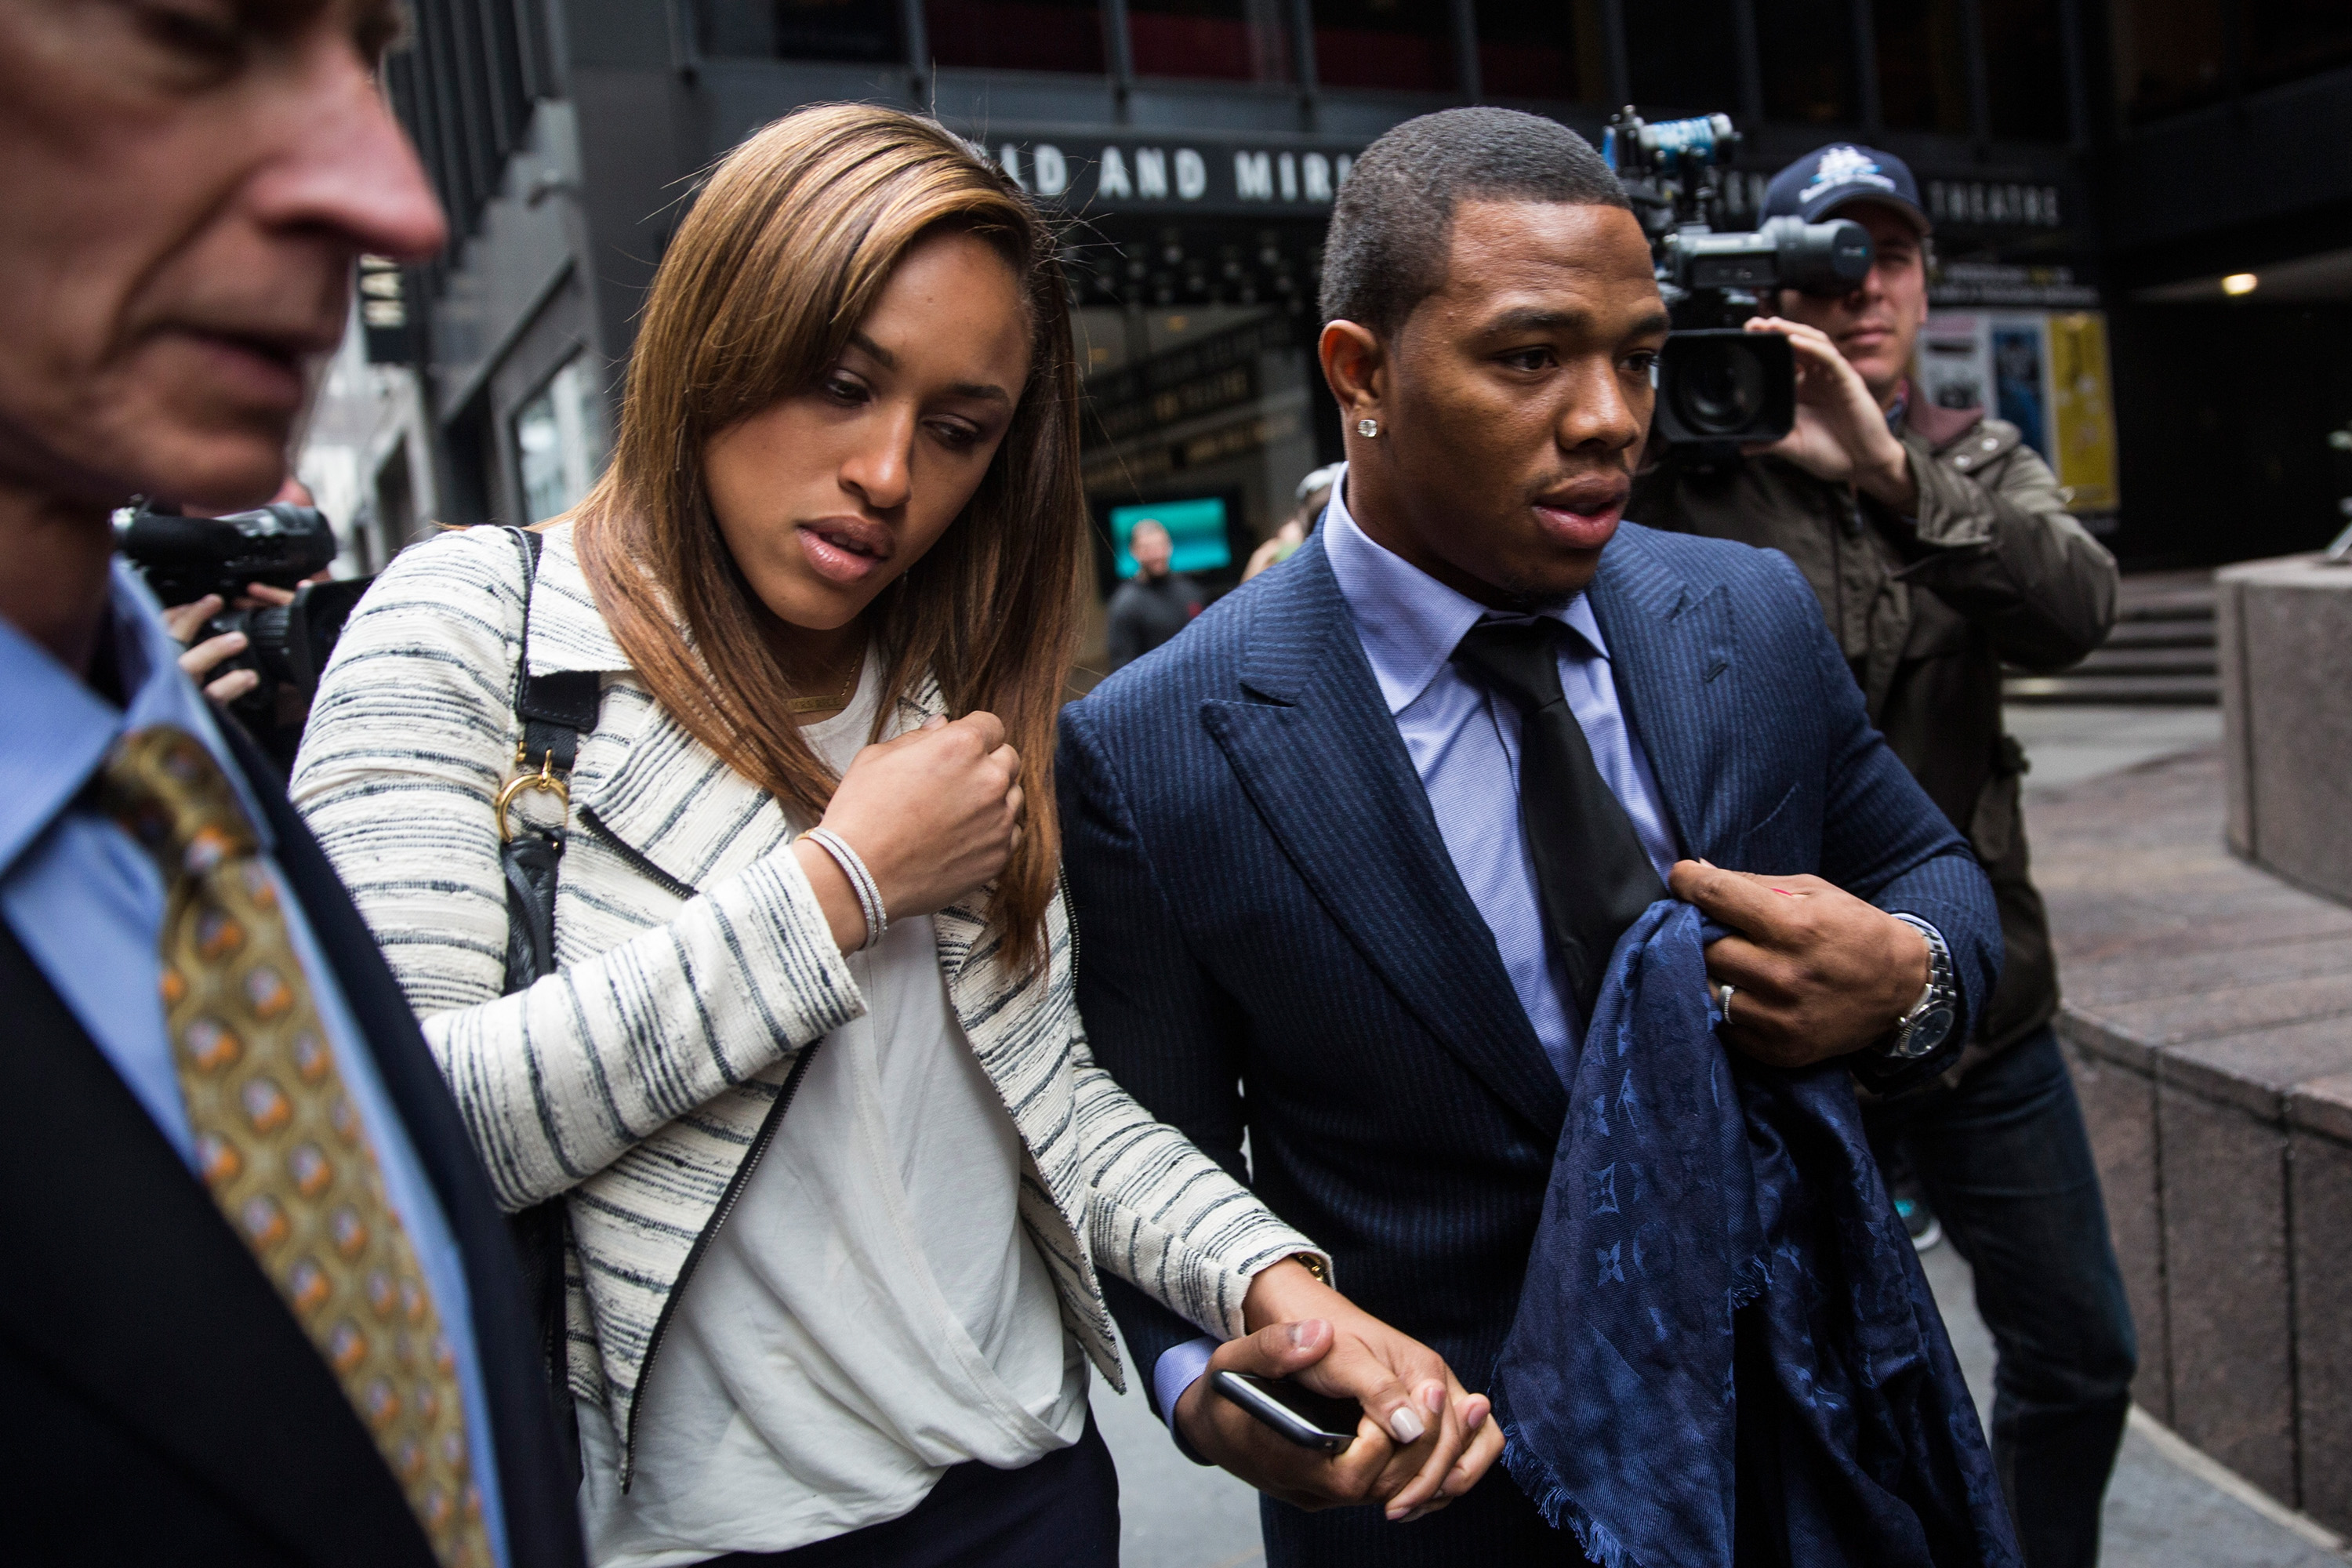 Ray Rice, right, and his wife Janay Palmer arrive for a hearing on Nov. 5, 2014 in New York.